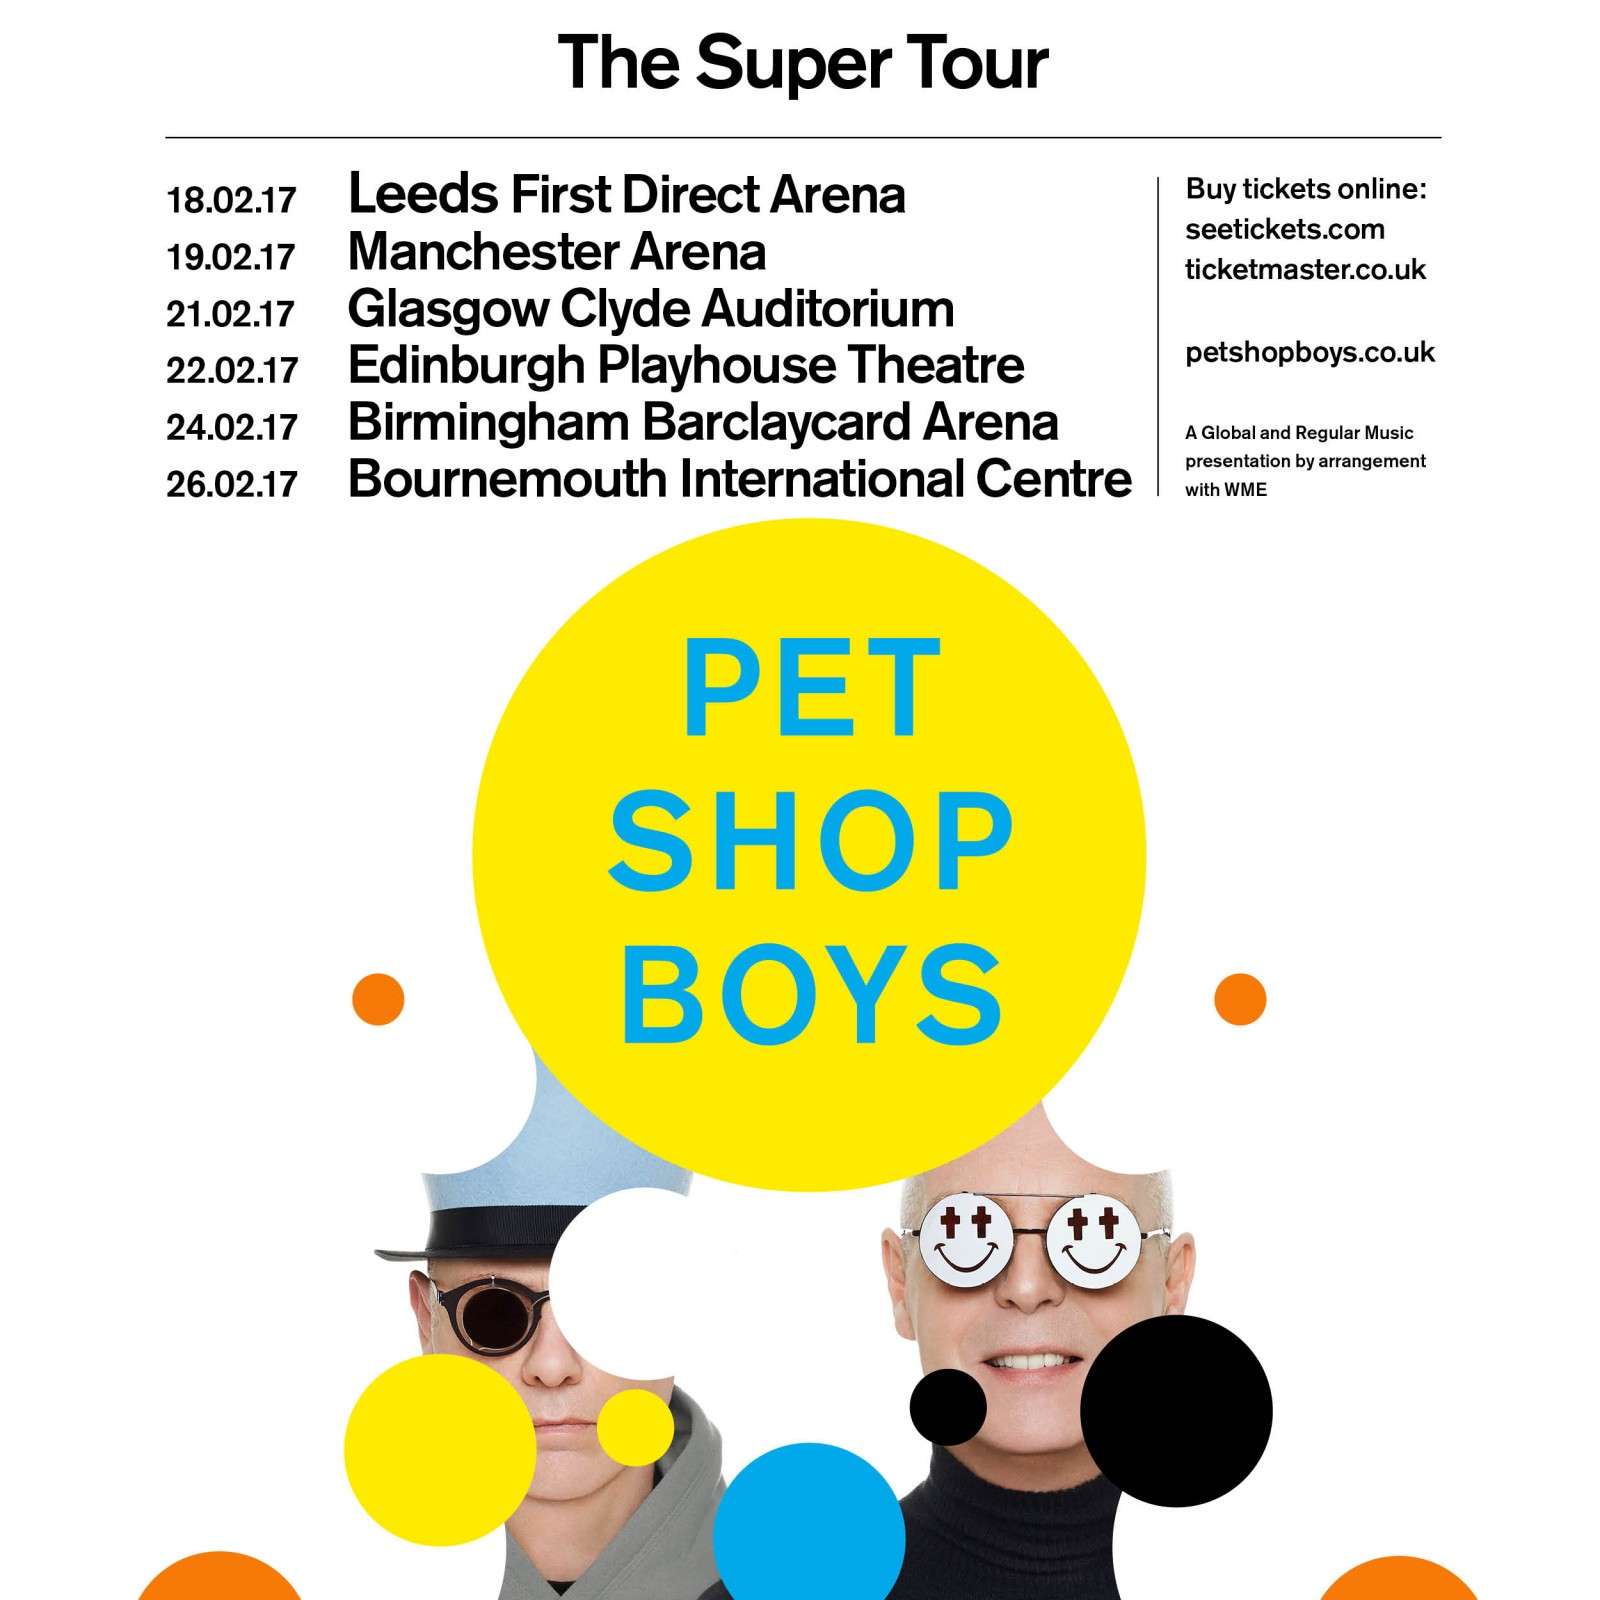 The UK Super Tour